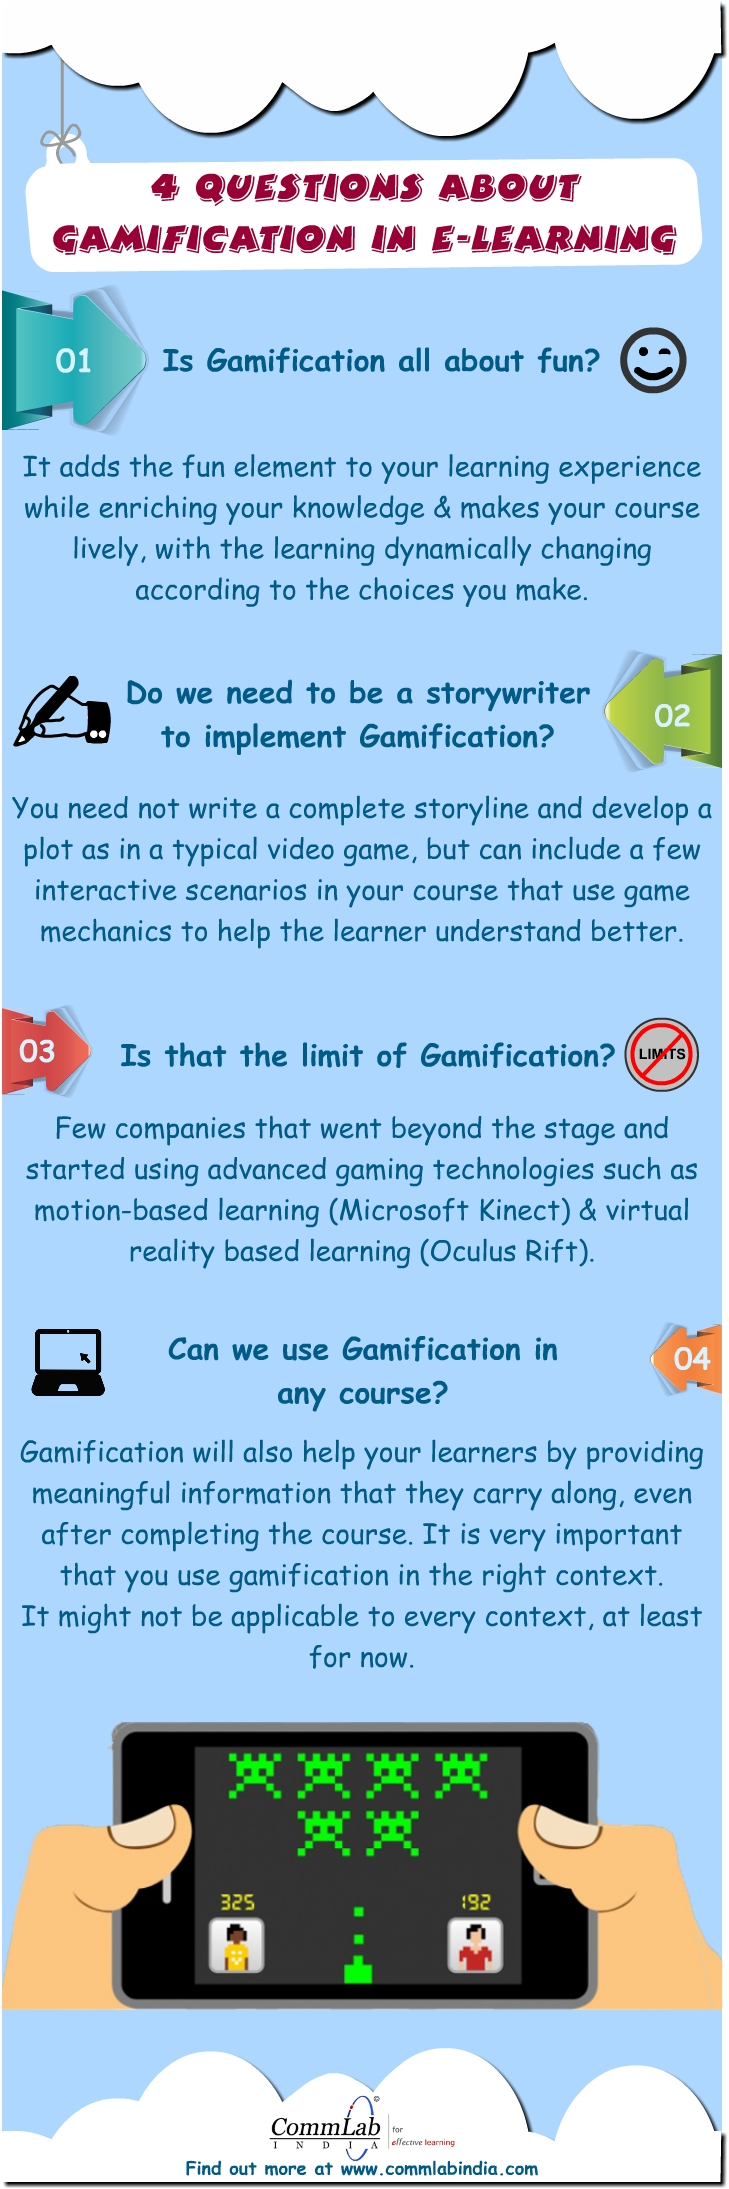 4 Questions about Gamification in E-learning – An Infographic